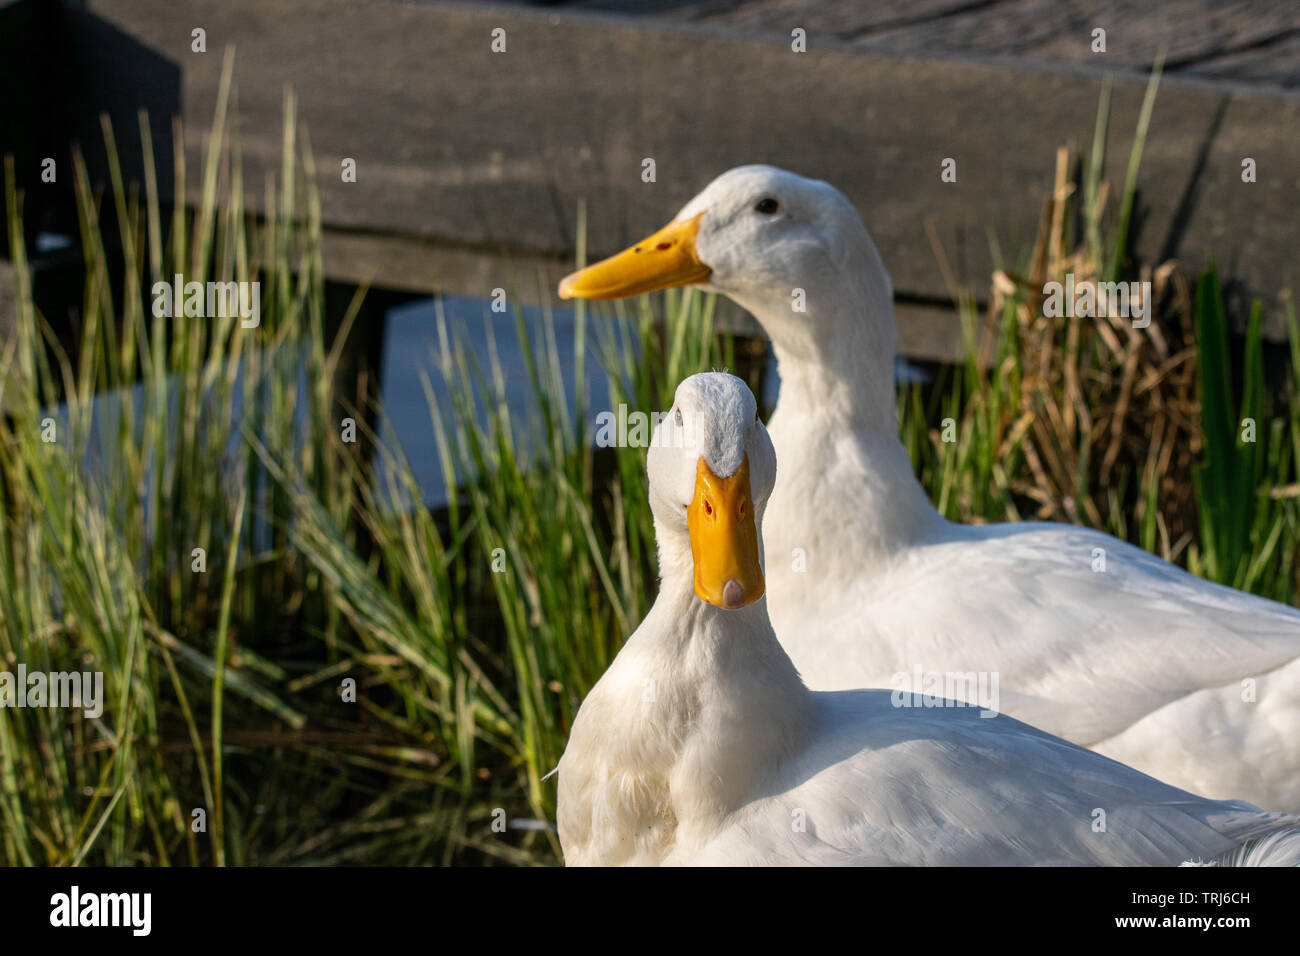 Two male pekin ducks (Anas platyrhynchos domesticus) by the lake at sunset - Stock Image